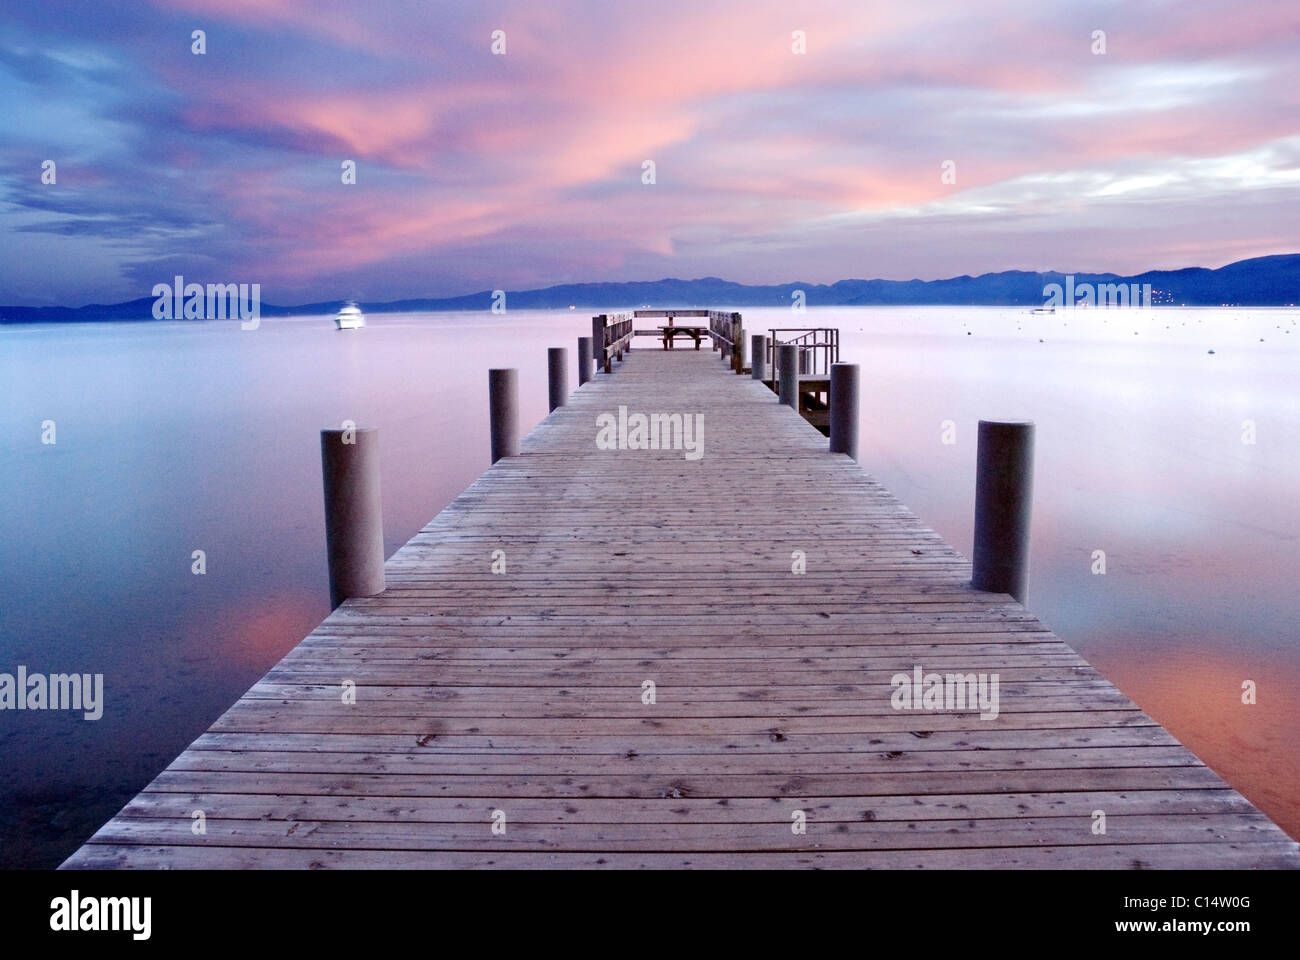 A pier at sunrise on the west shore of Lake Tahoe, California. - Stock Image